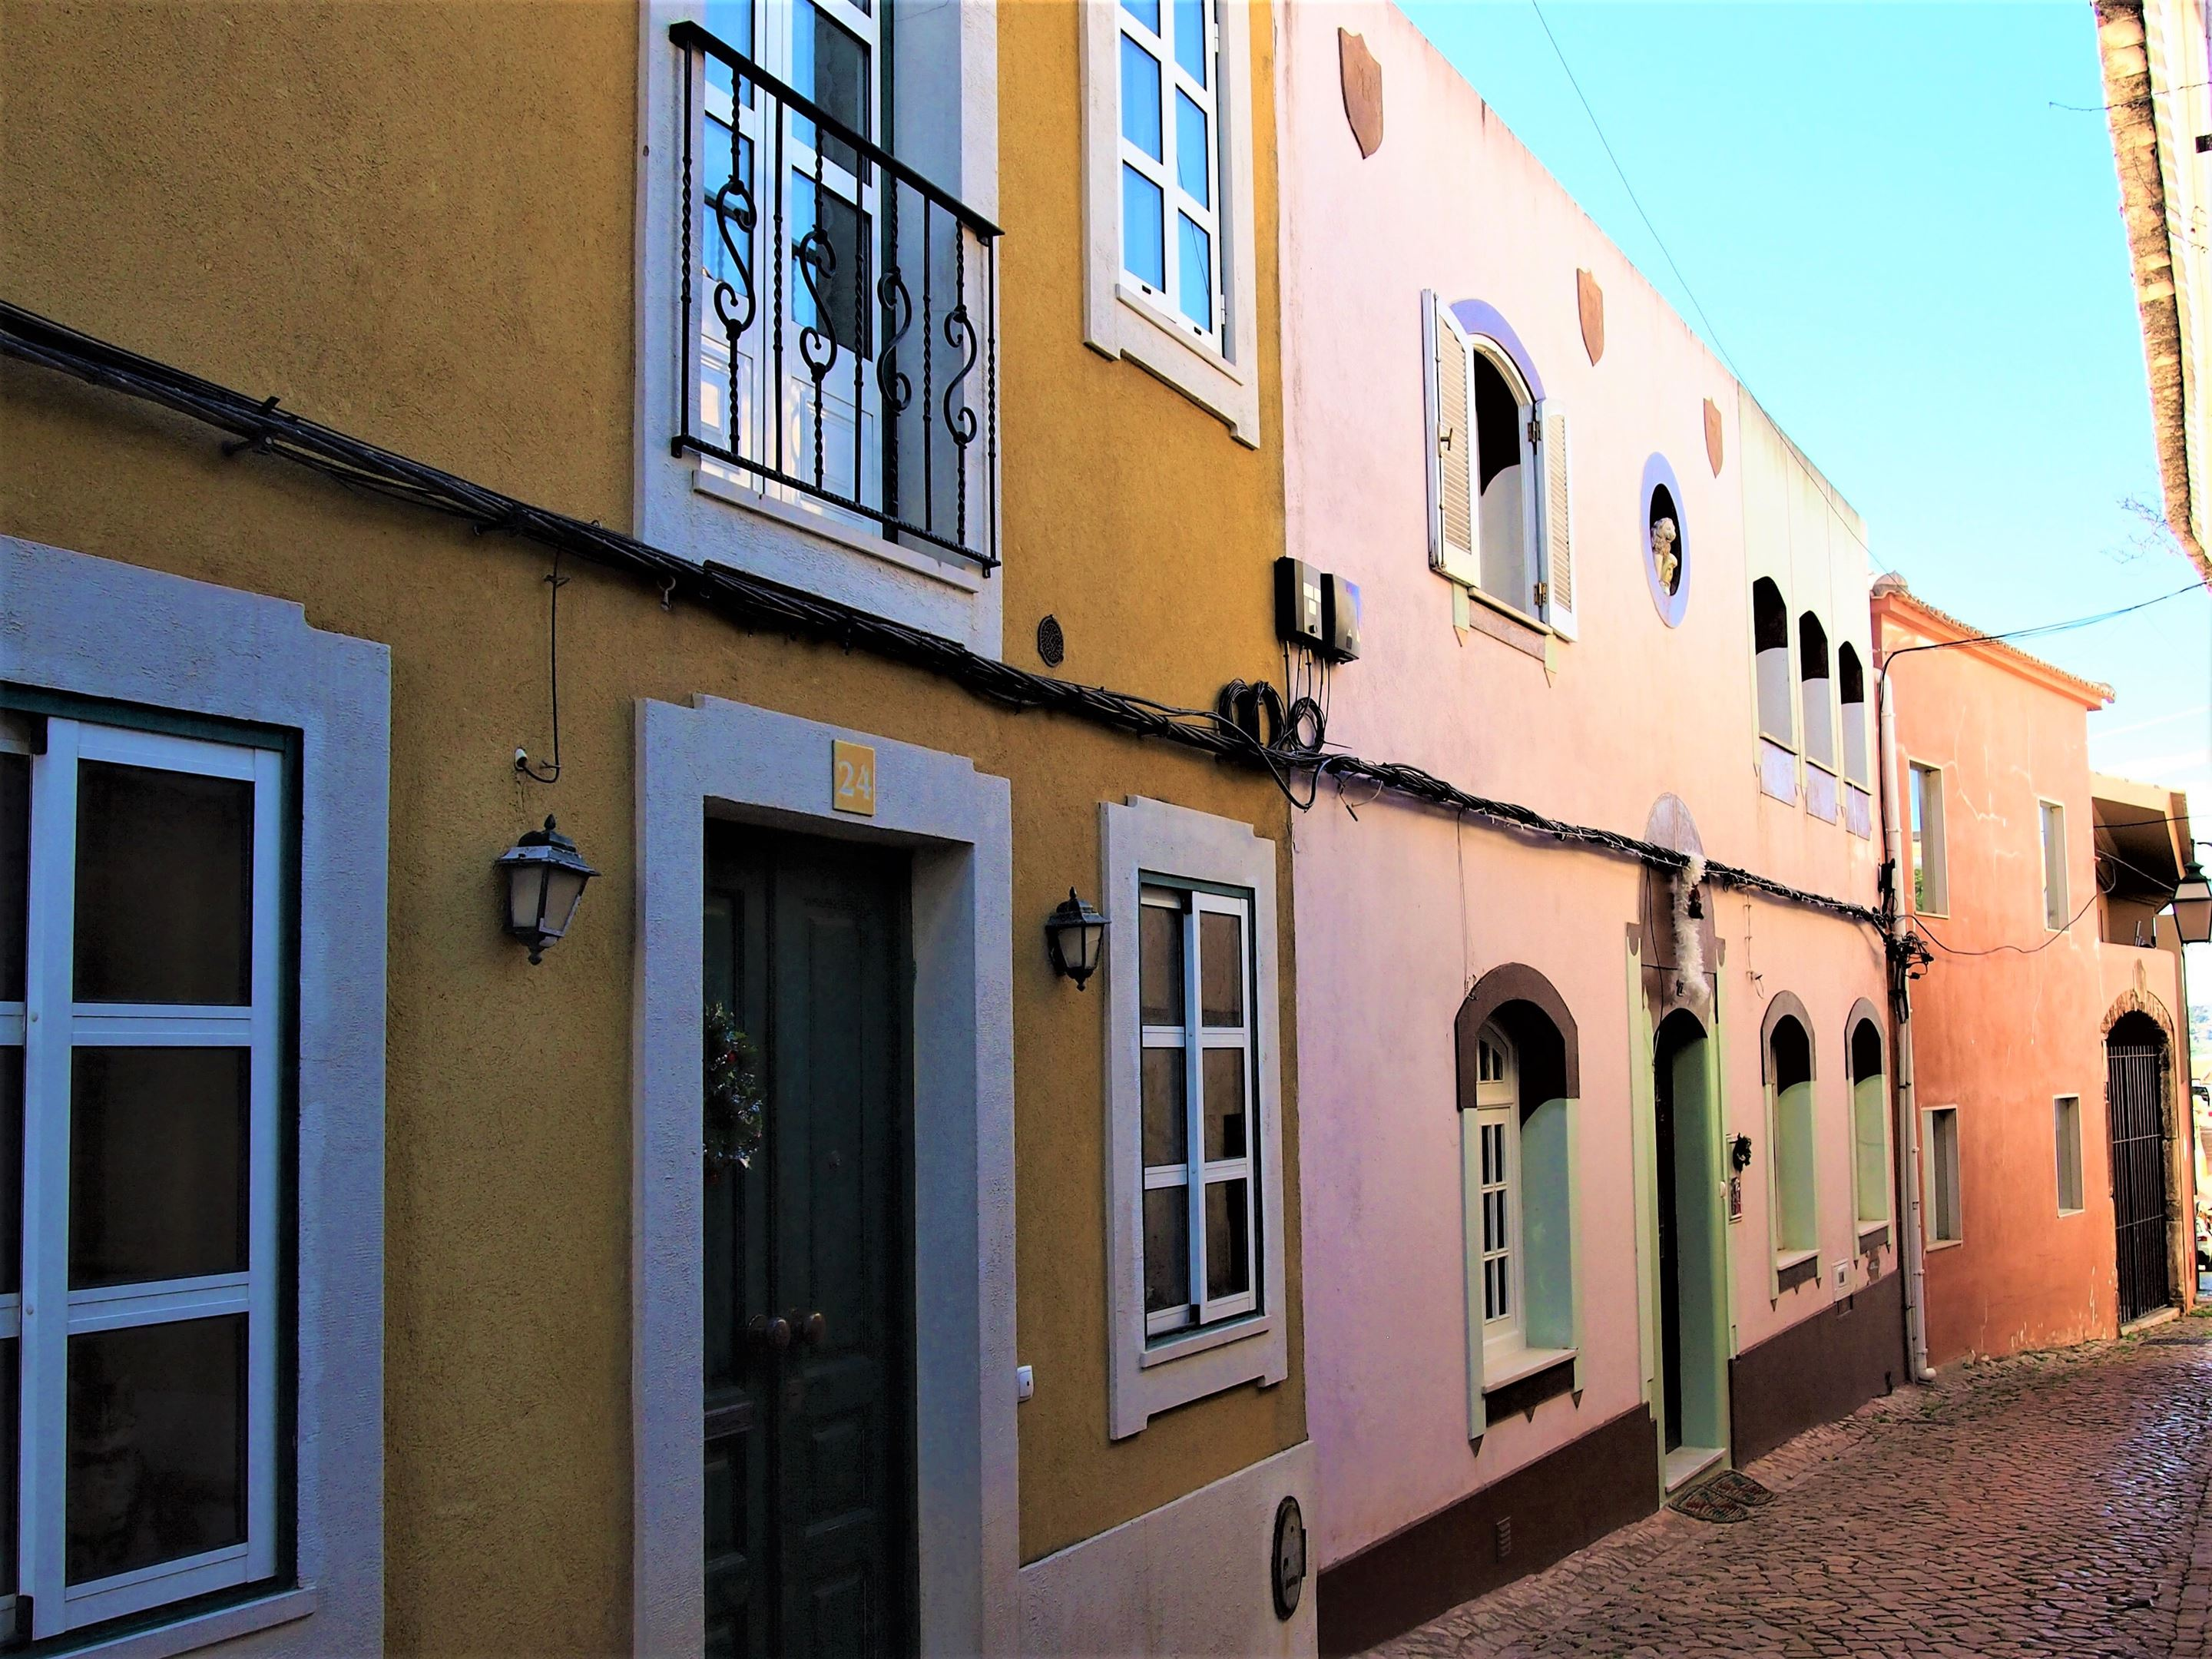 Typical architecture in Silves, Algarve